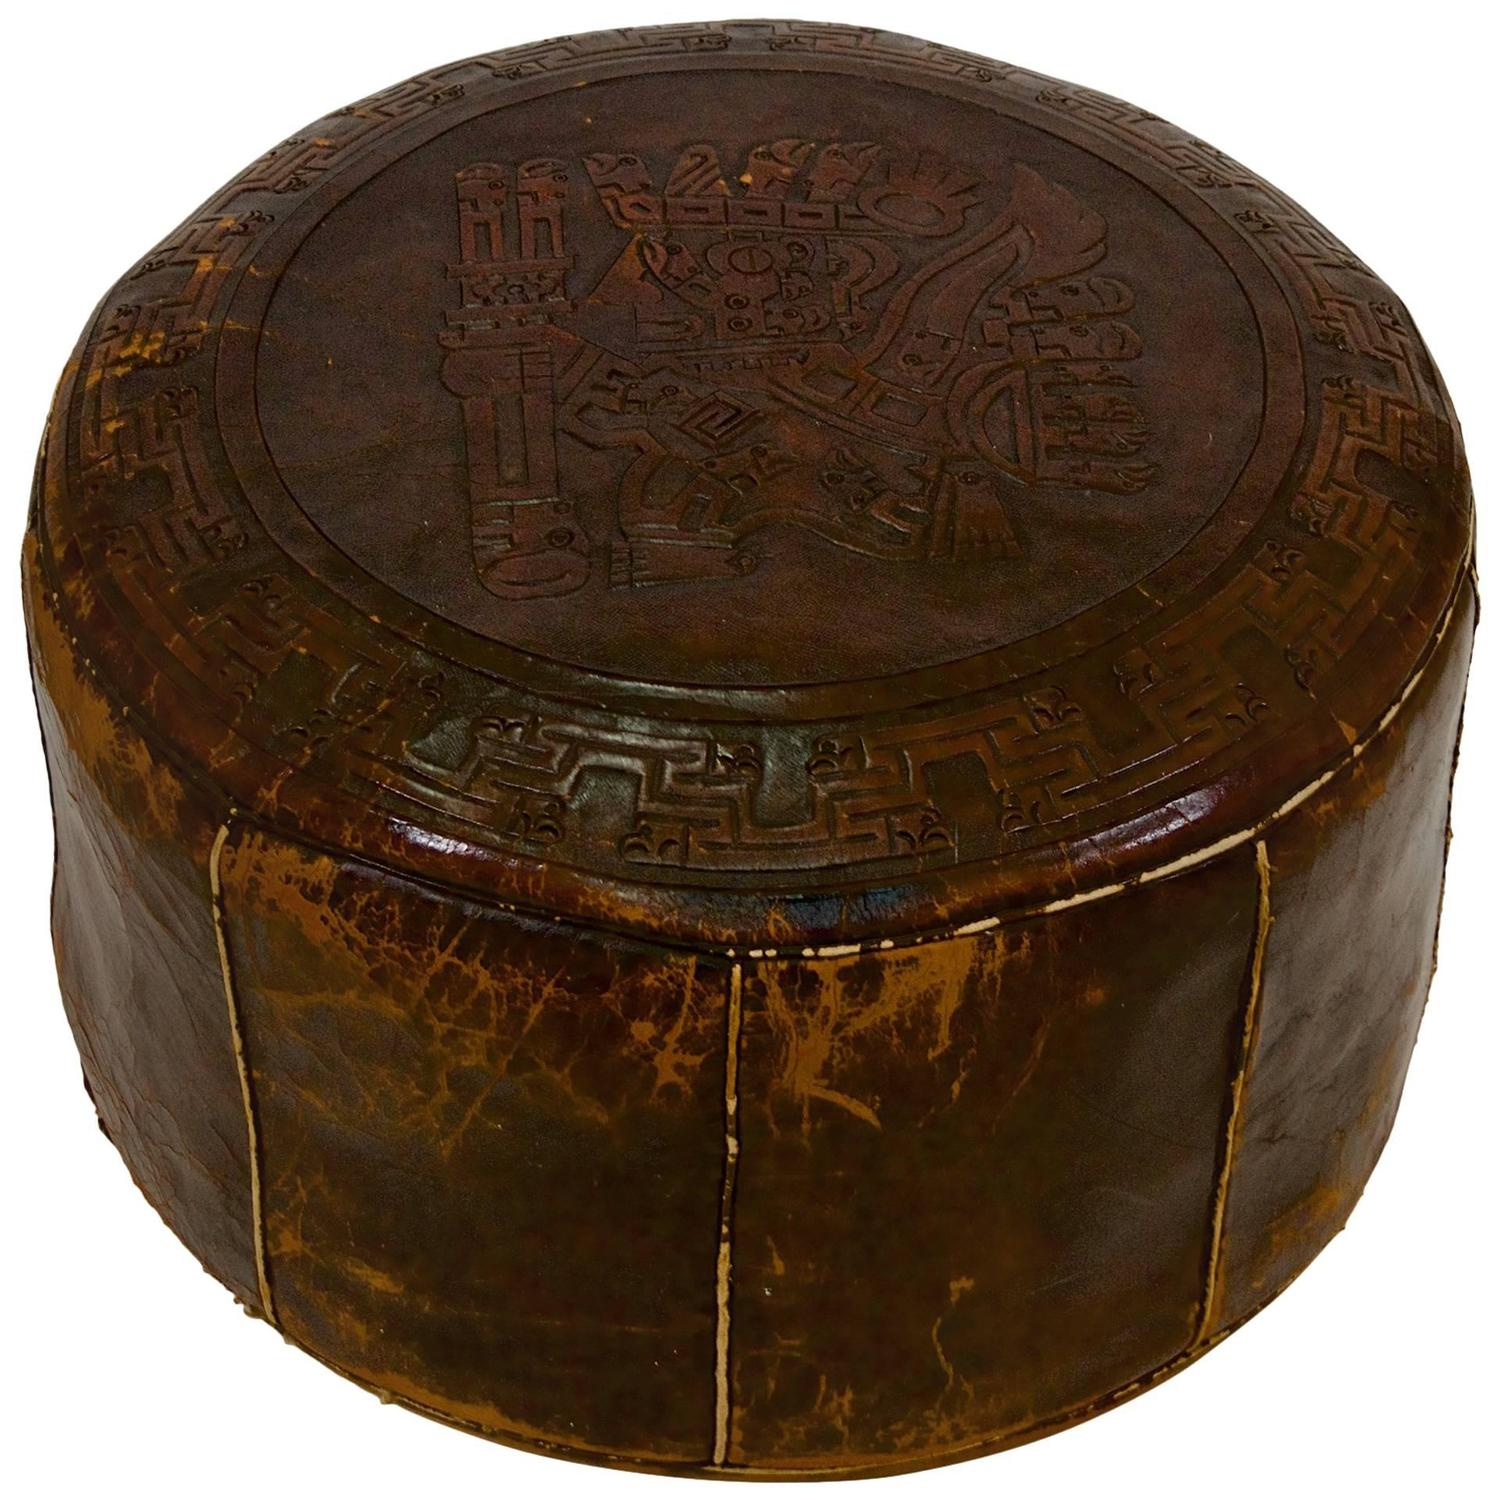 Peruvian leather pouf for sale at 1stdibs